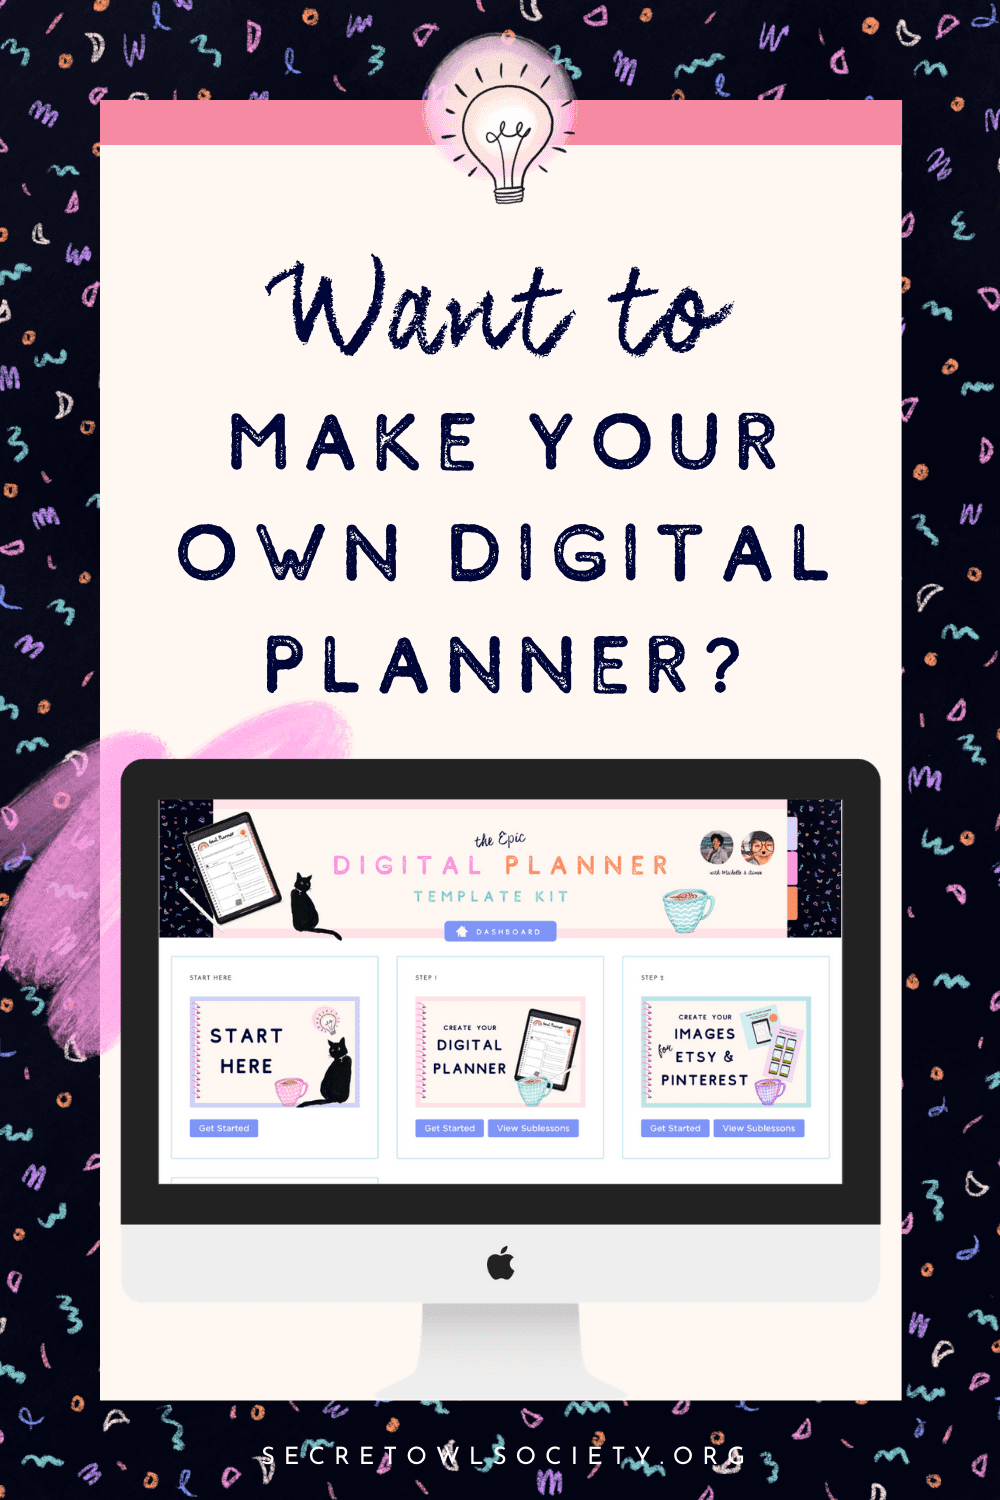 Learn how to make your own Digital Planner